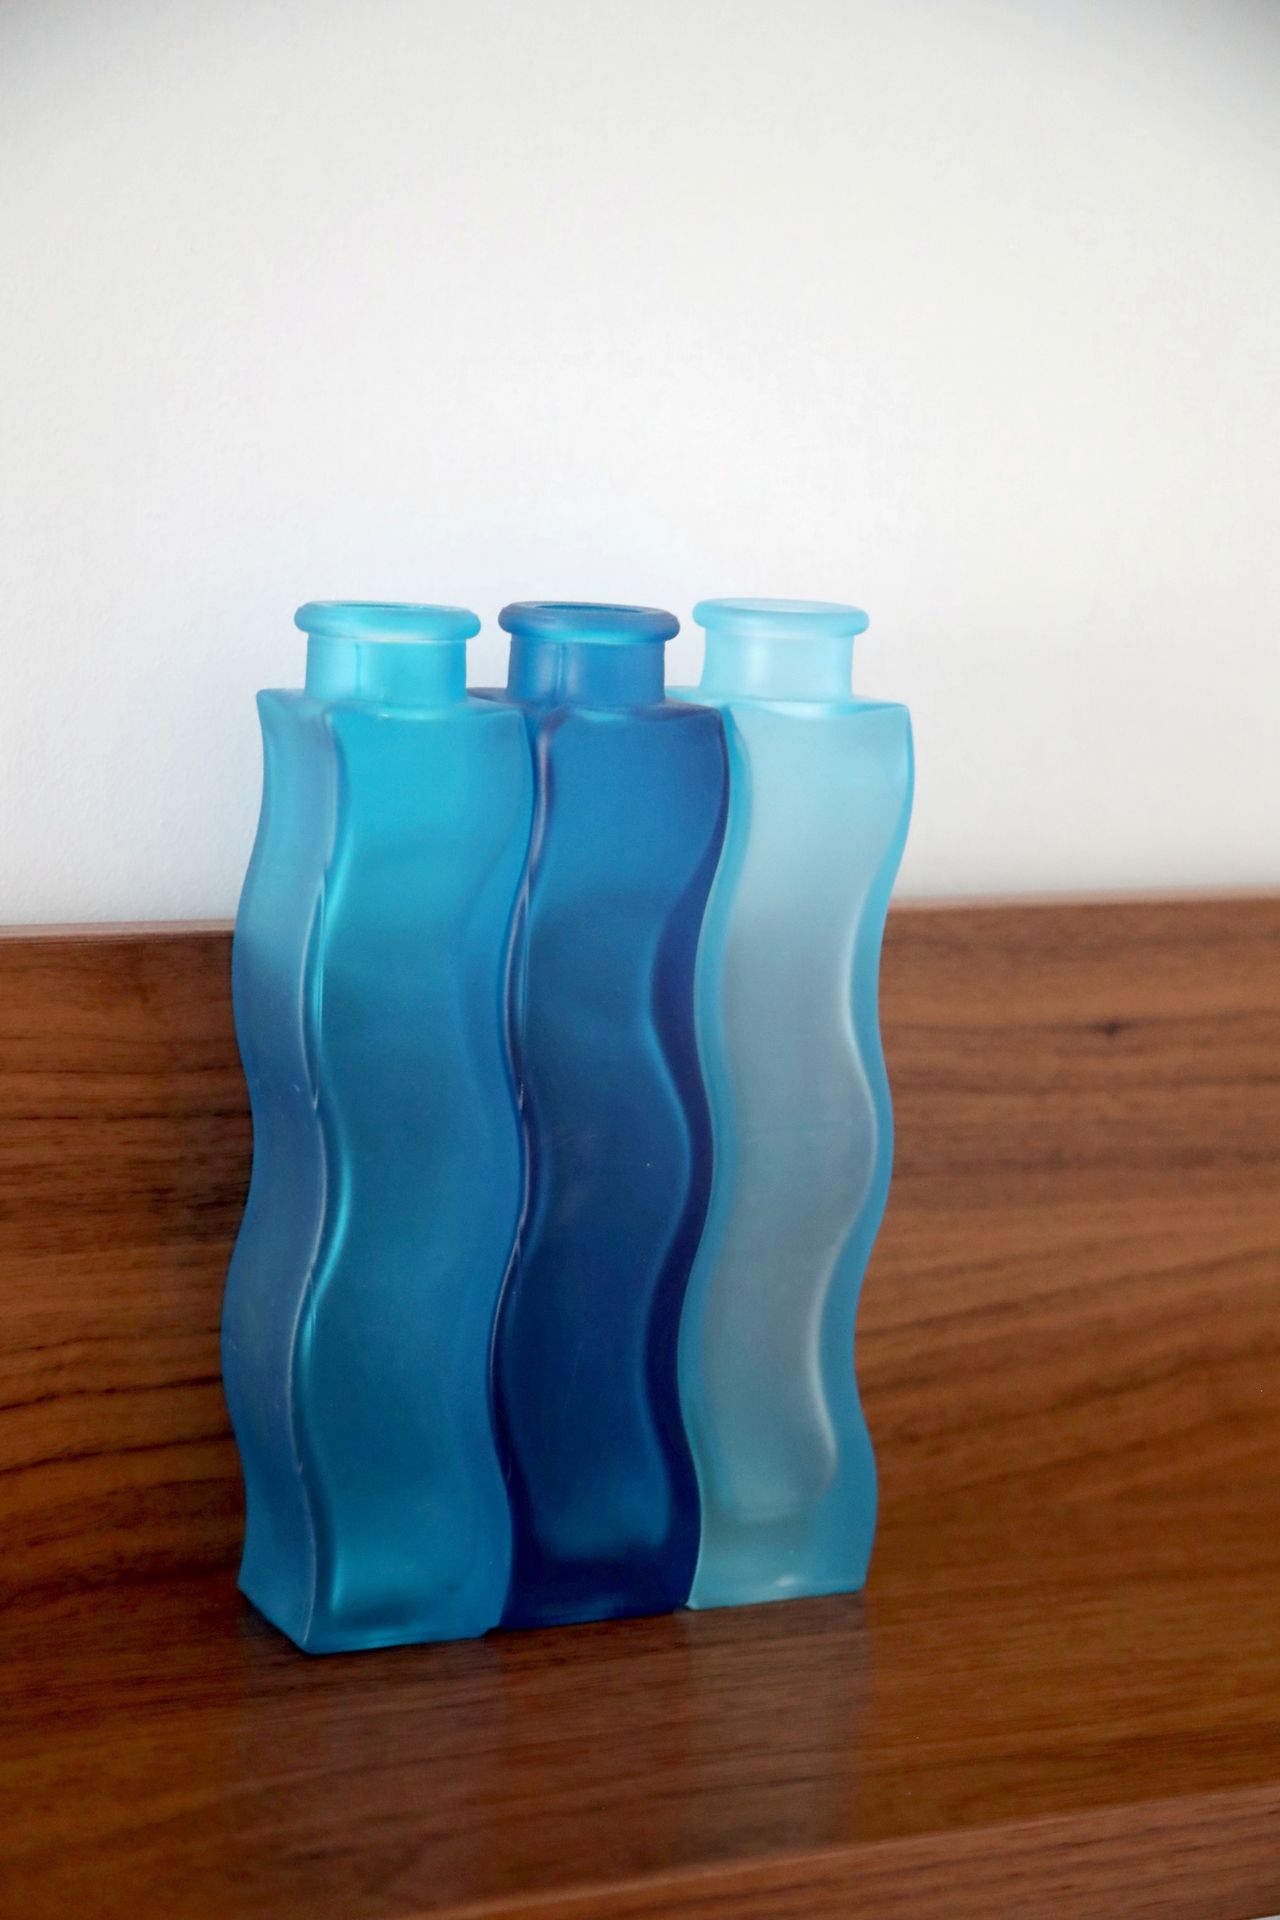 Blue Blue Vases Bottles Day Decoration Glass Indoors  No People Table